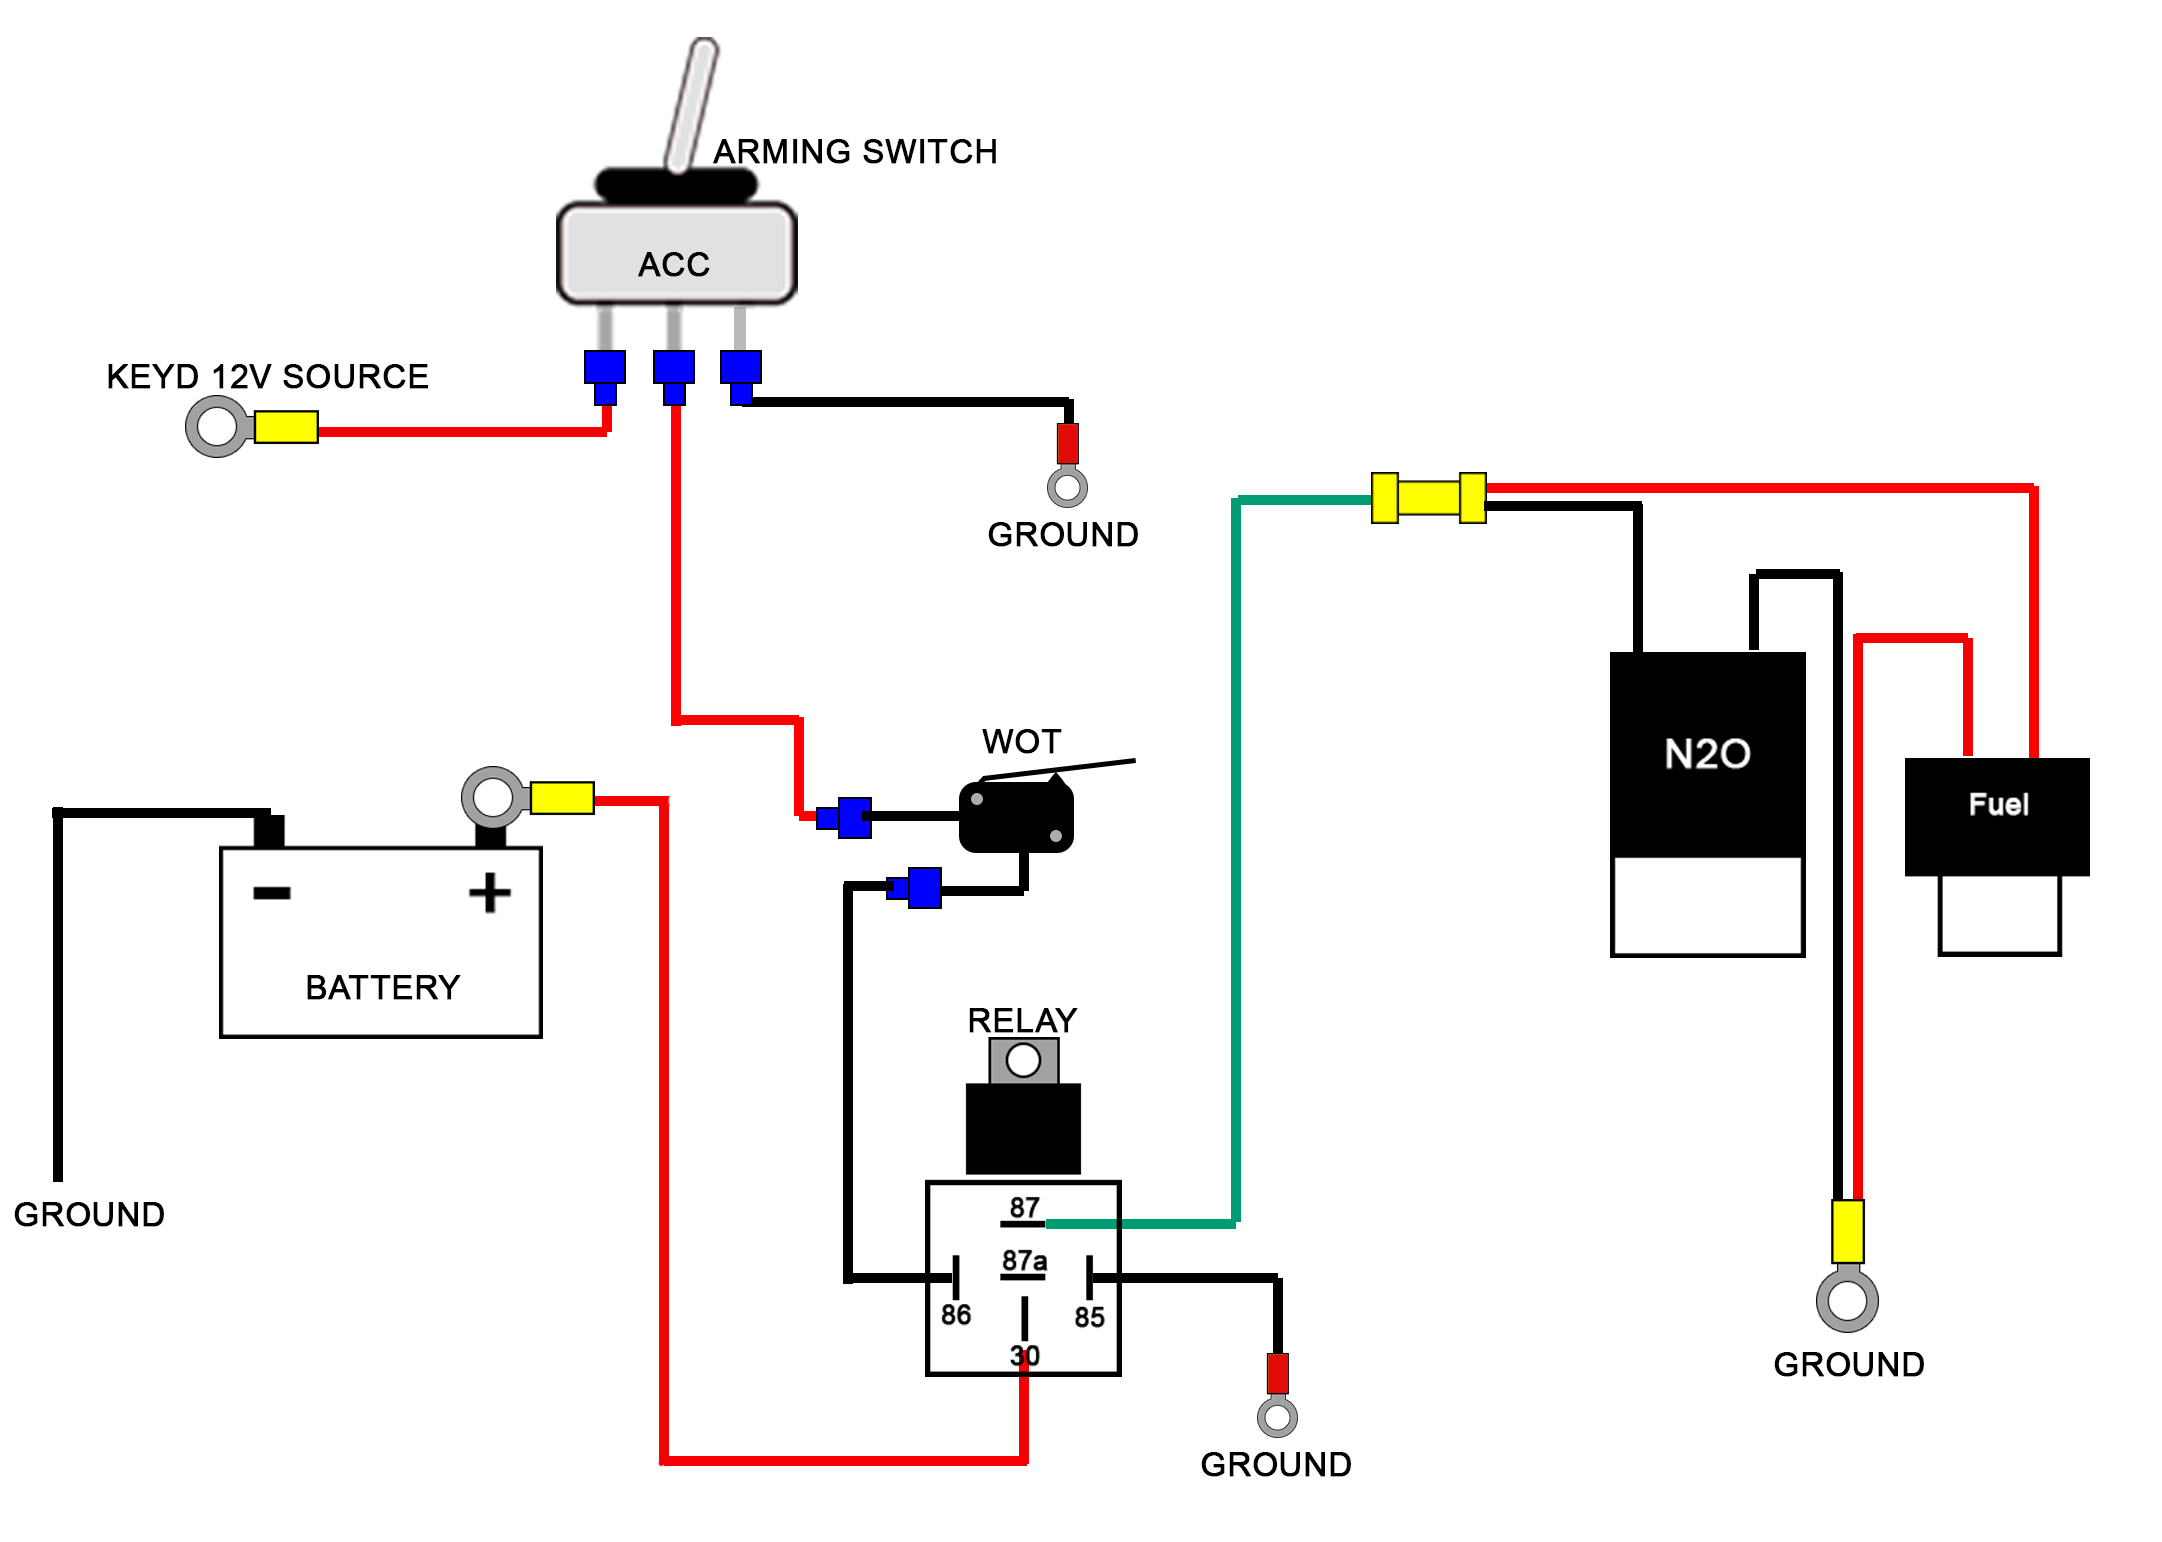 Wiring Diagrams - Universal Fuel Gauge Wiring Diagram